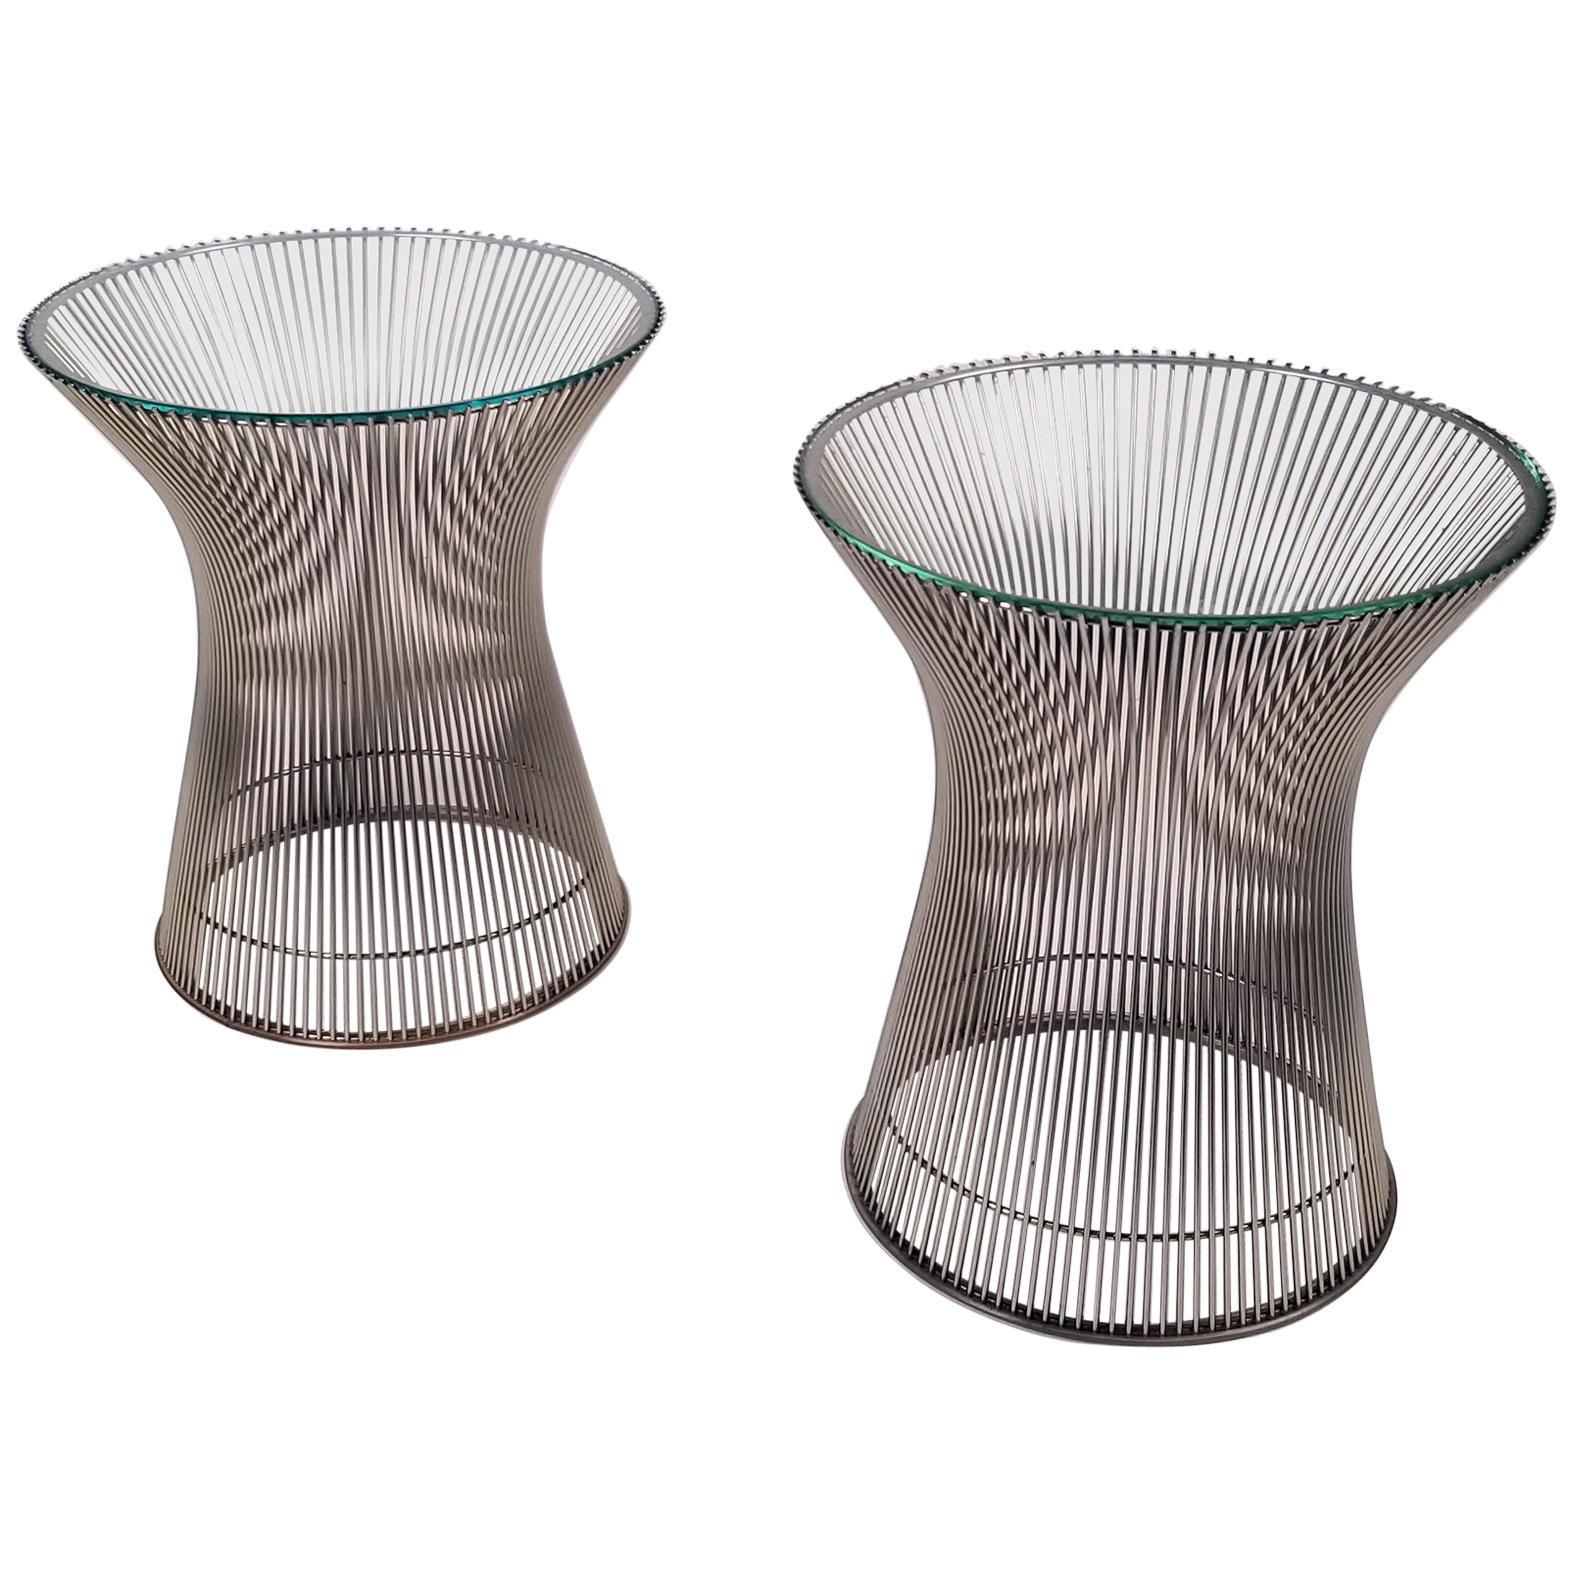 Early Side Tables Designed by Warren Platner for Knoll